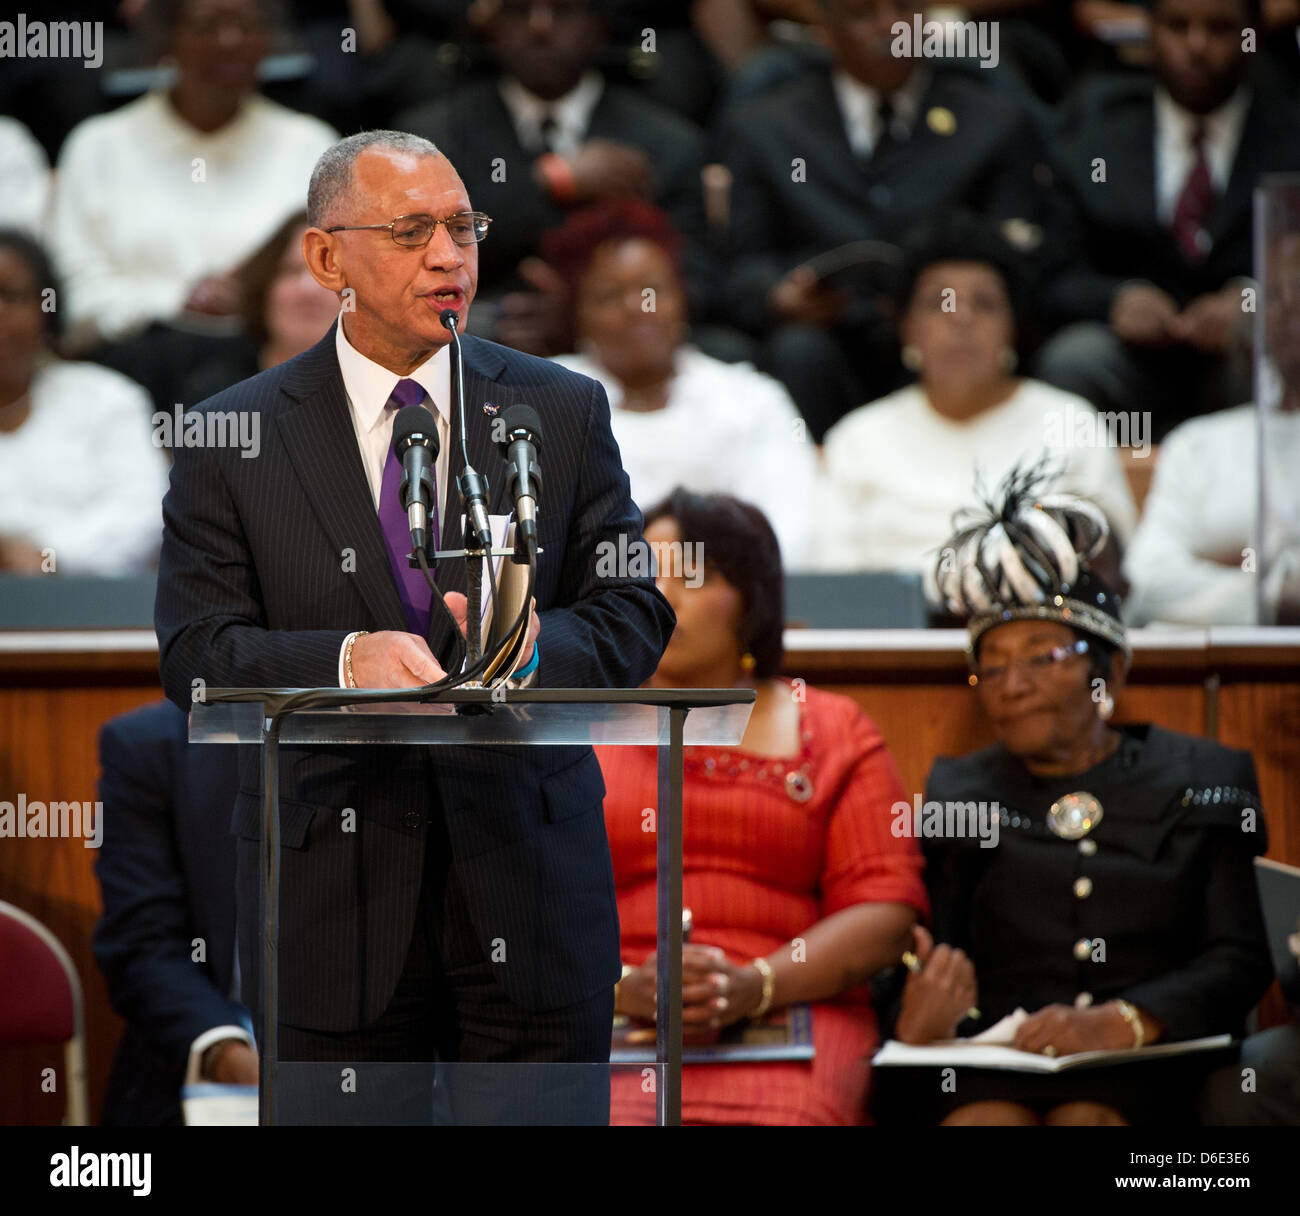 National Aeronautics and Space Administration (NASA) Administrator Charles Bolden speaks and delivers greetings - Stock Image